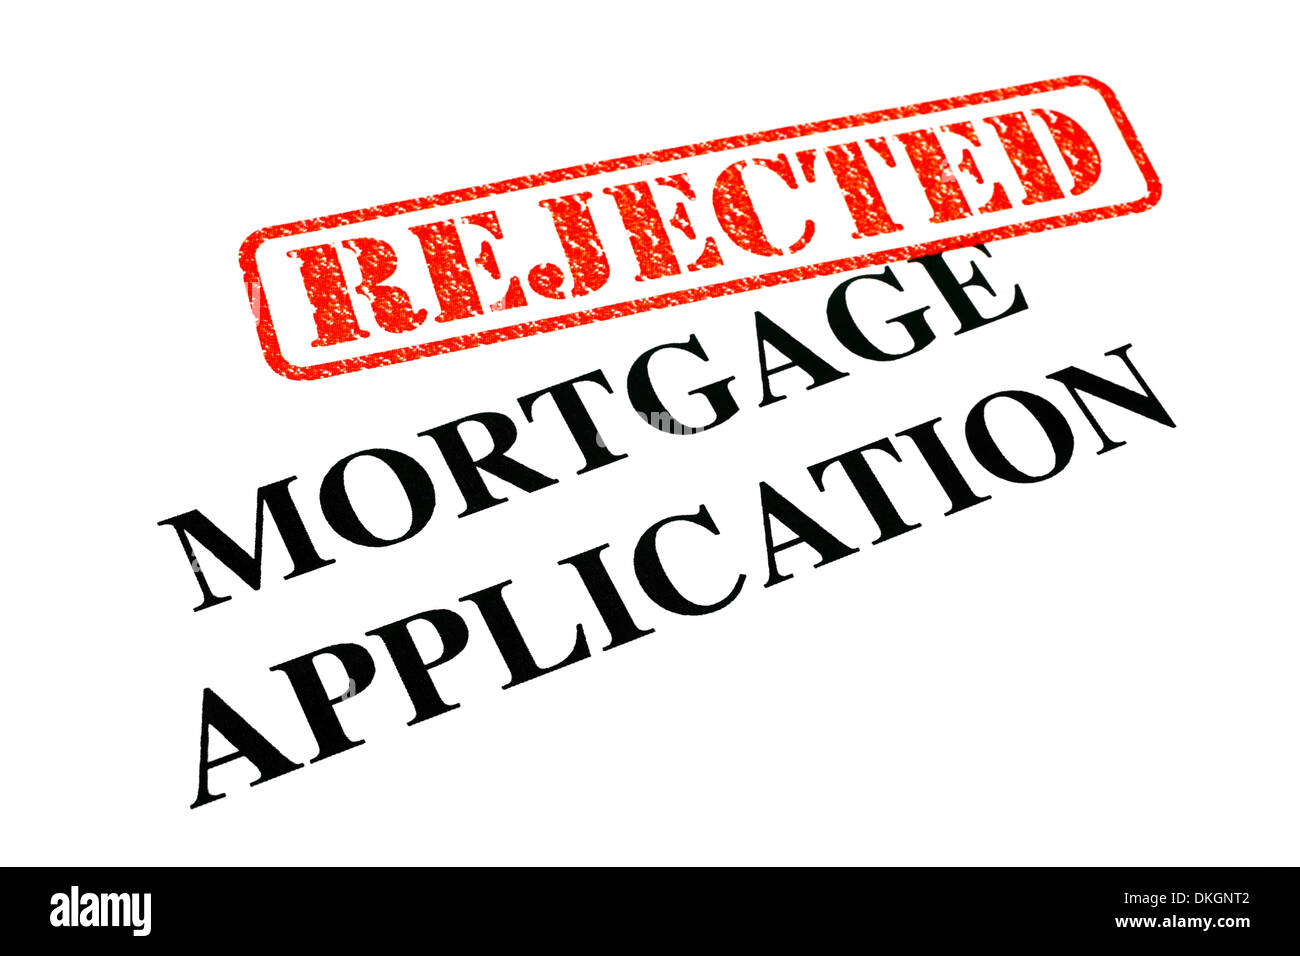 Mortgage Approved Stockfotos & Mortgage Approved Bilder - Alamy